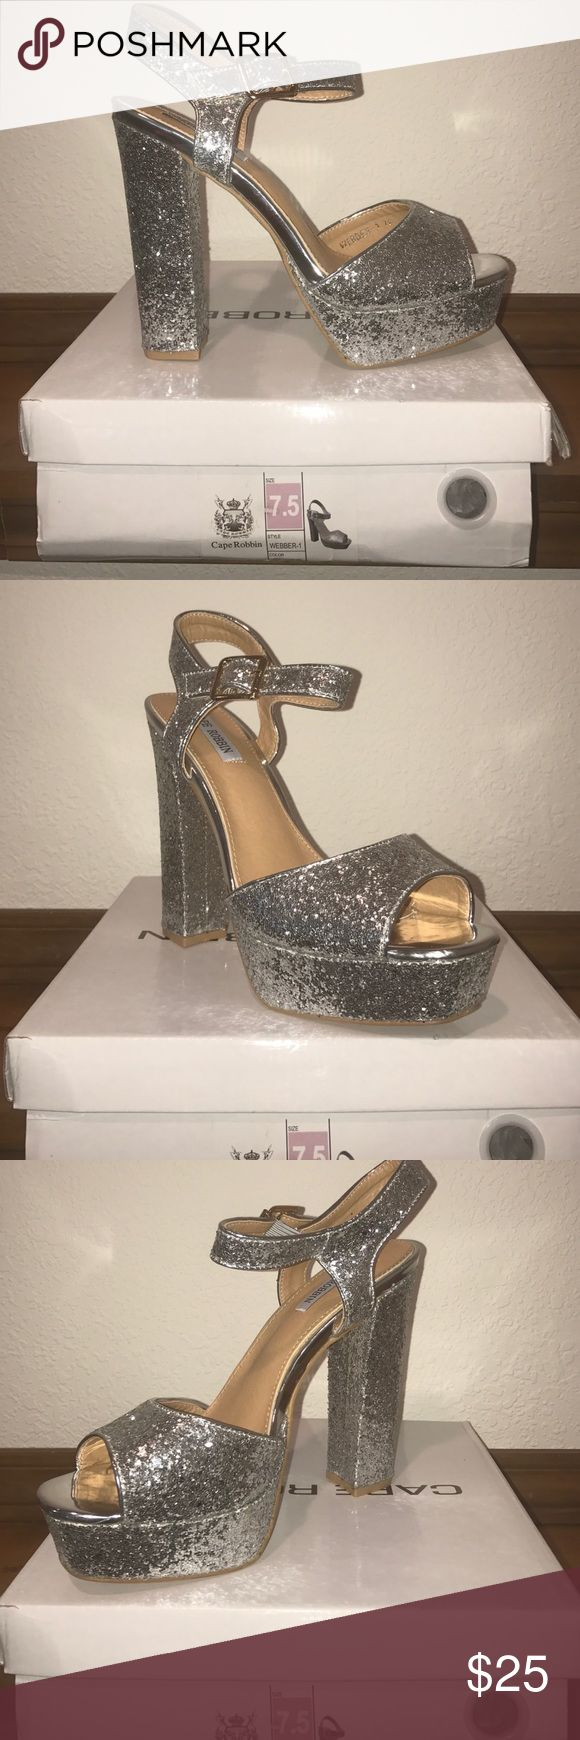 BRAND NEW SILVER HEEL☑️☑️ Never worn, brand new, silver Chunky Heel with glitter sparkle all over, very sexy Cape Robbin Shoes Heels